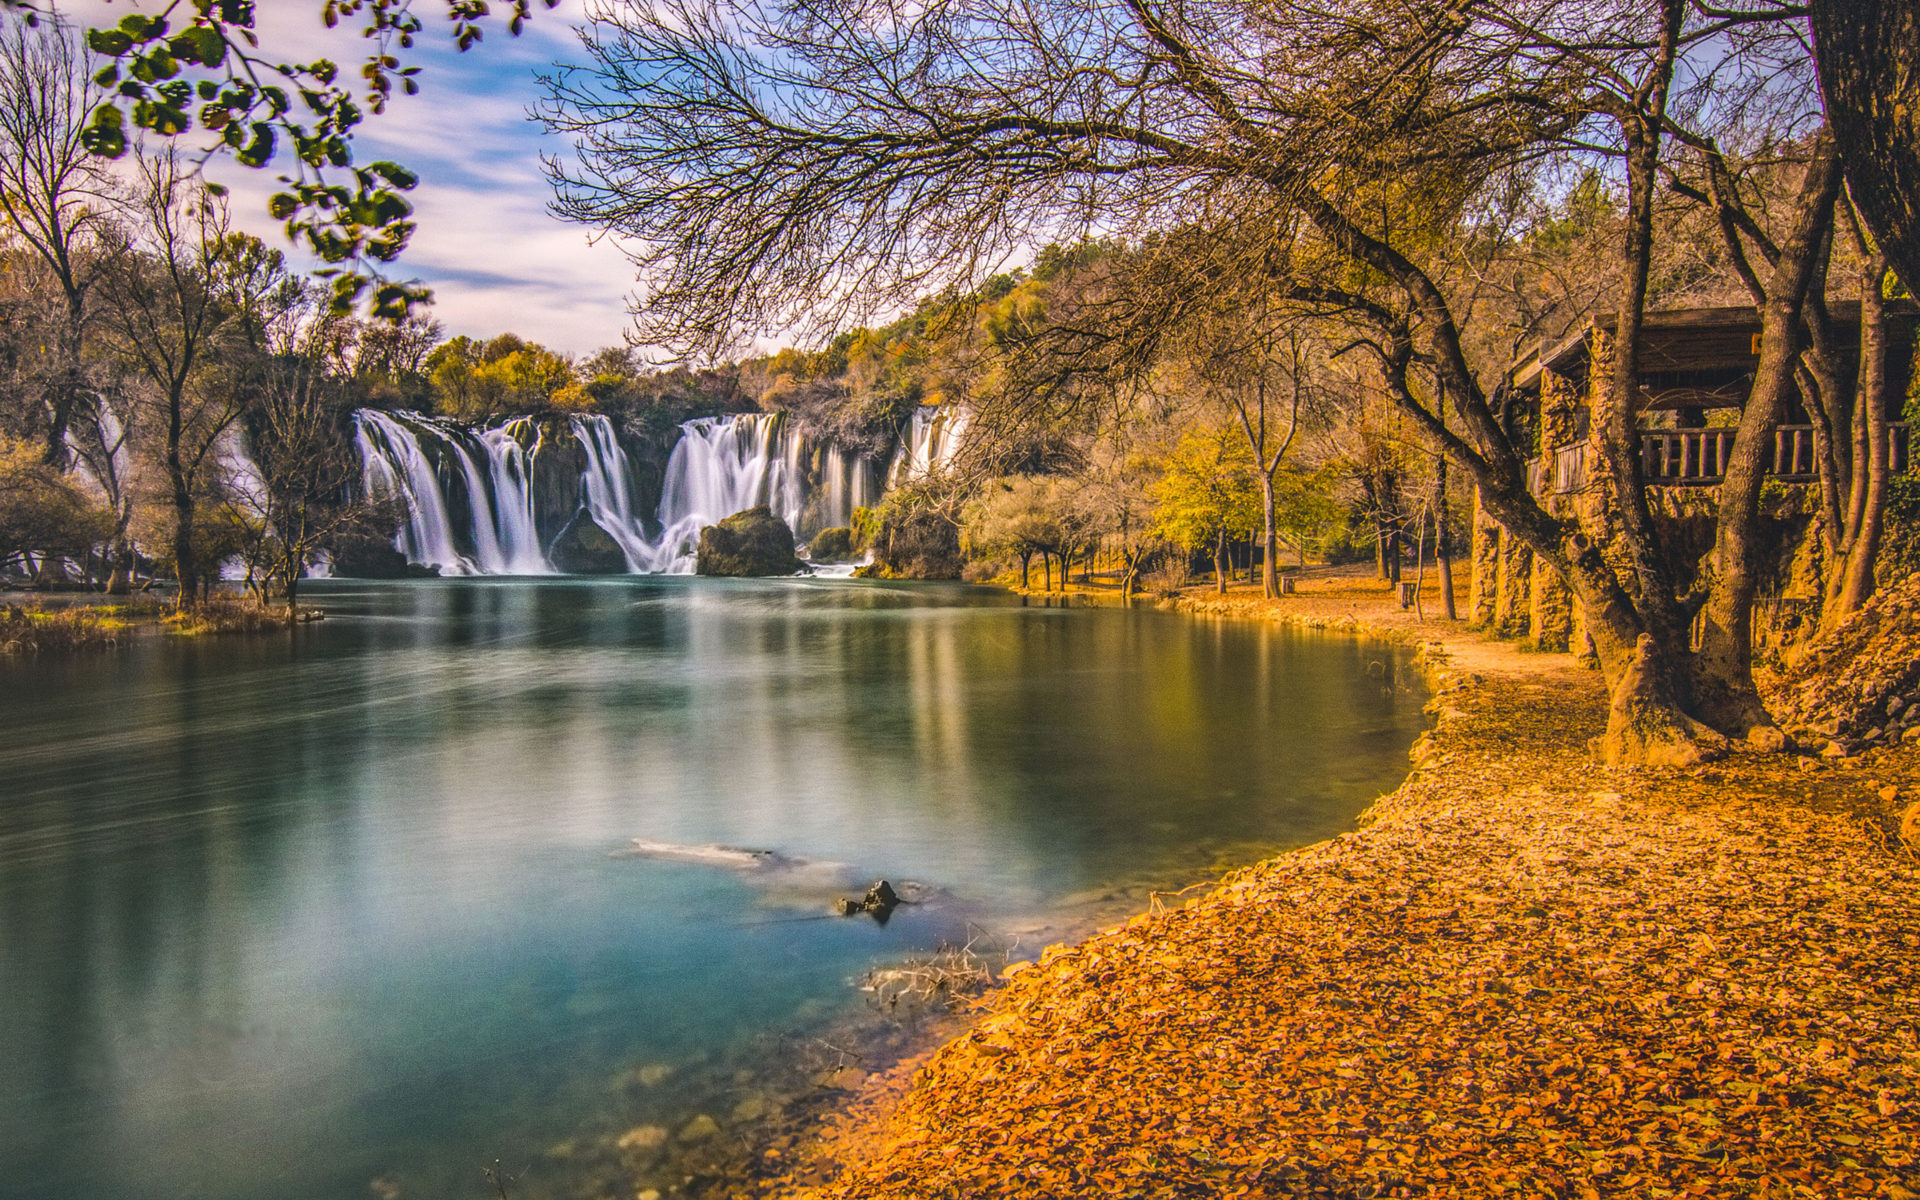 Beautiful Water Fall Scenery Wallpapers Kravice Waterfall In Bosnia Herzegovina Autumn Landscape